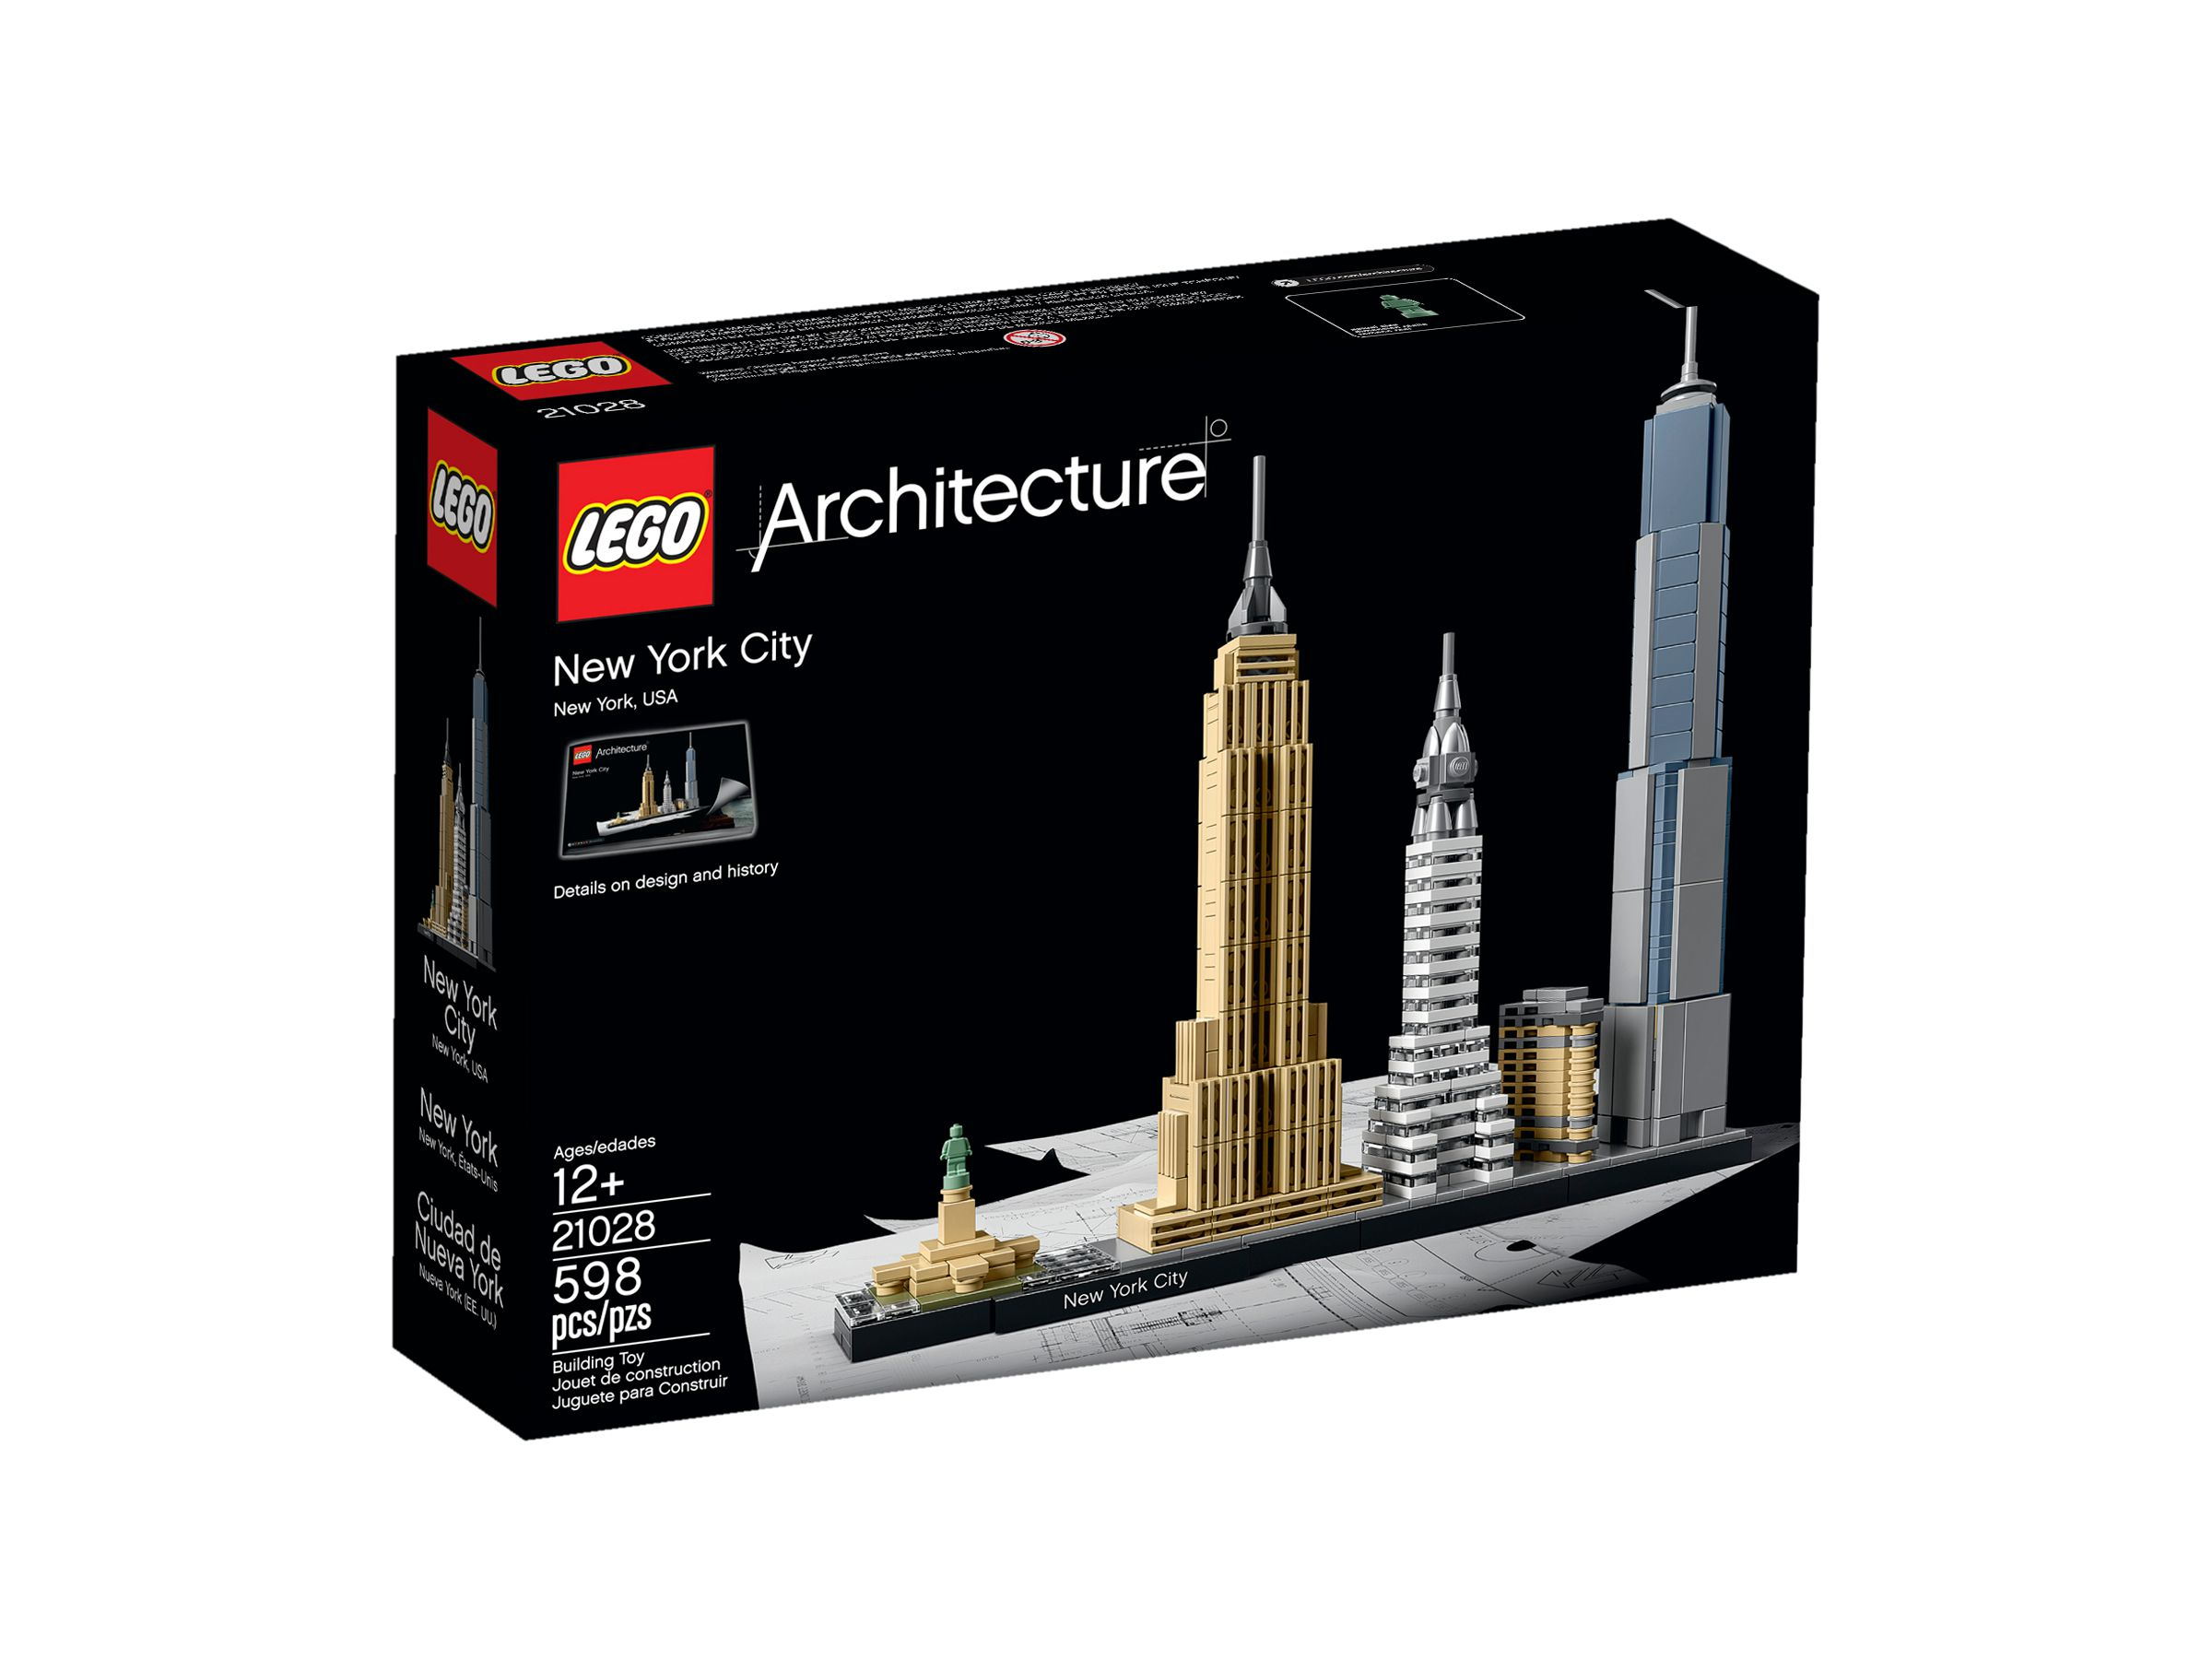 LEGO Architecture 21028 New York City LEGO_21028_alt1.jpg